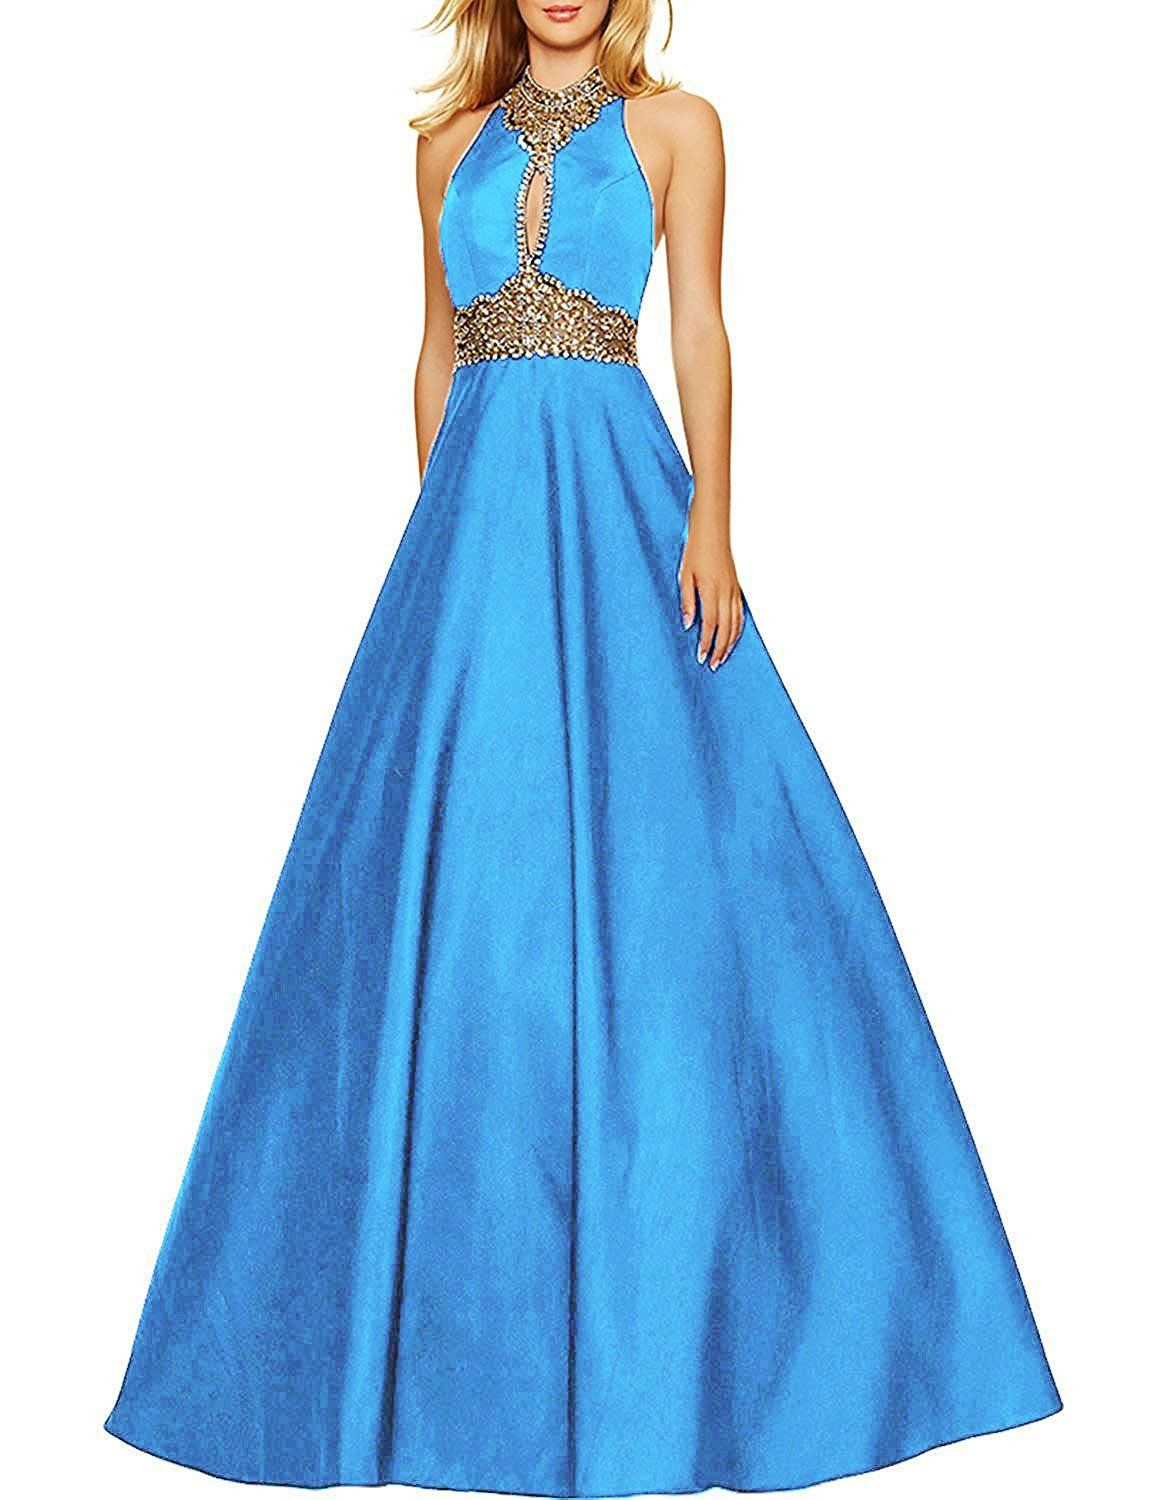 Womenus high neck prom dresses with rhinestones long beading